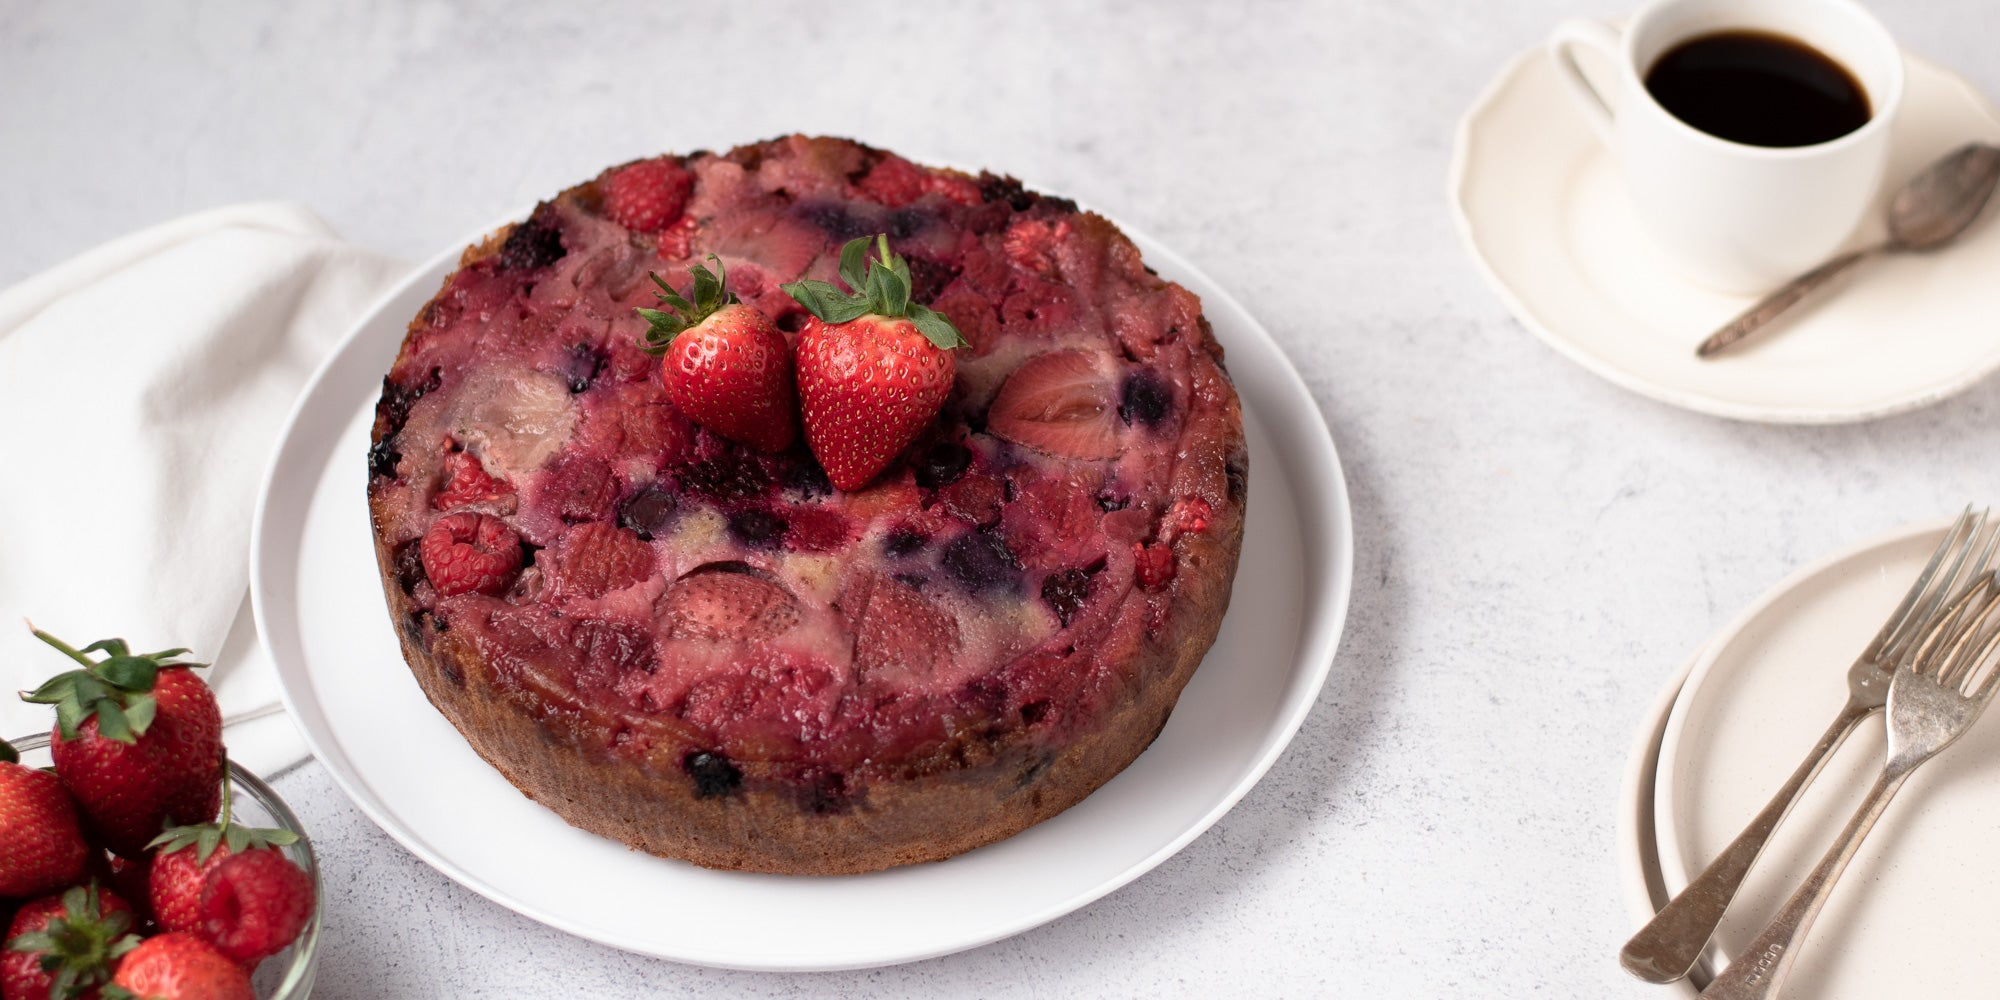 upside down berry pudding on a plate topped with two strawberries